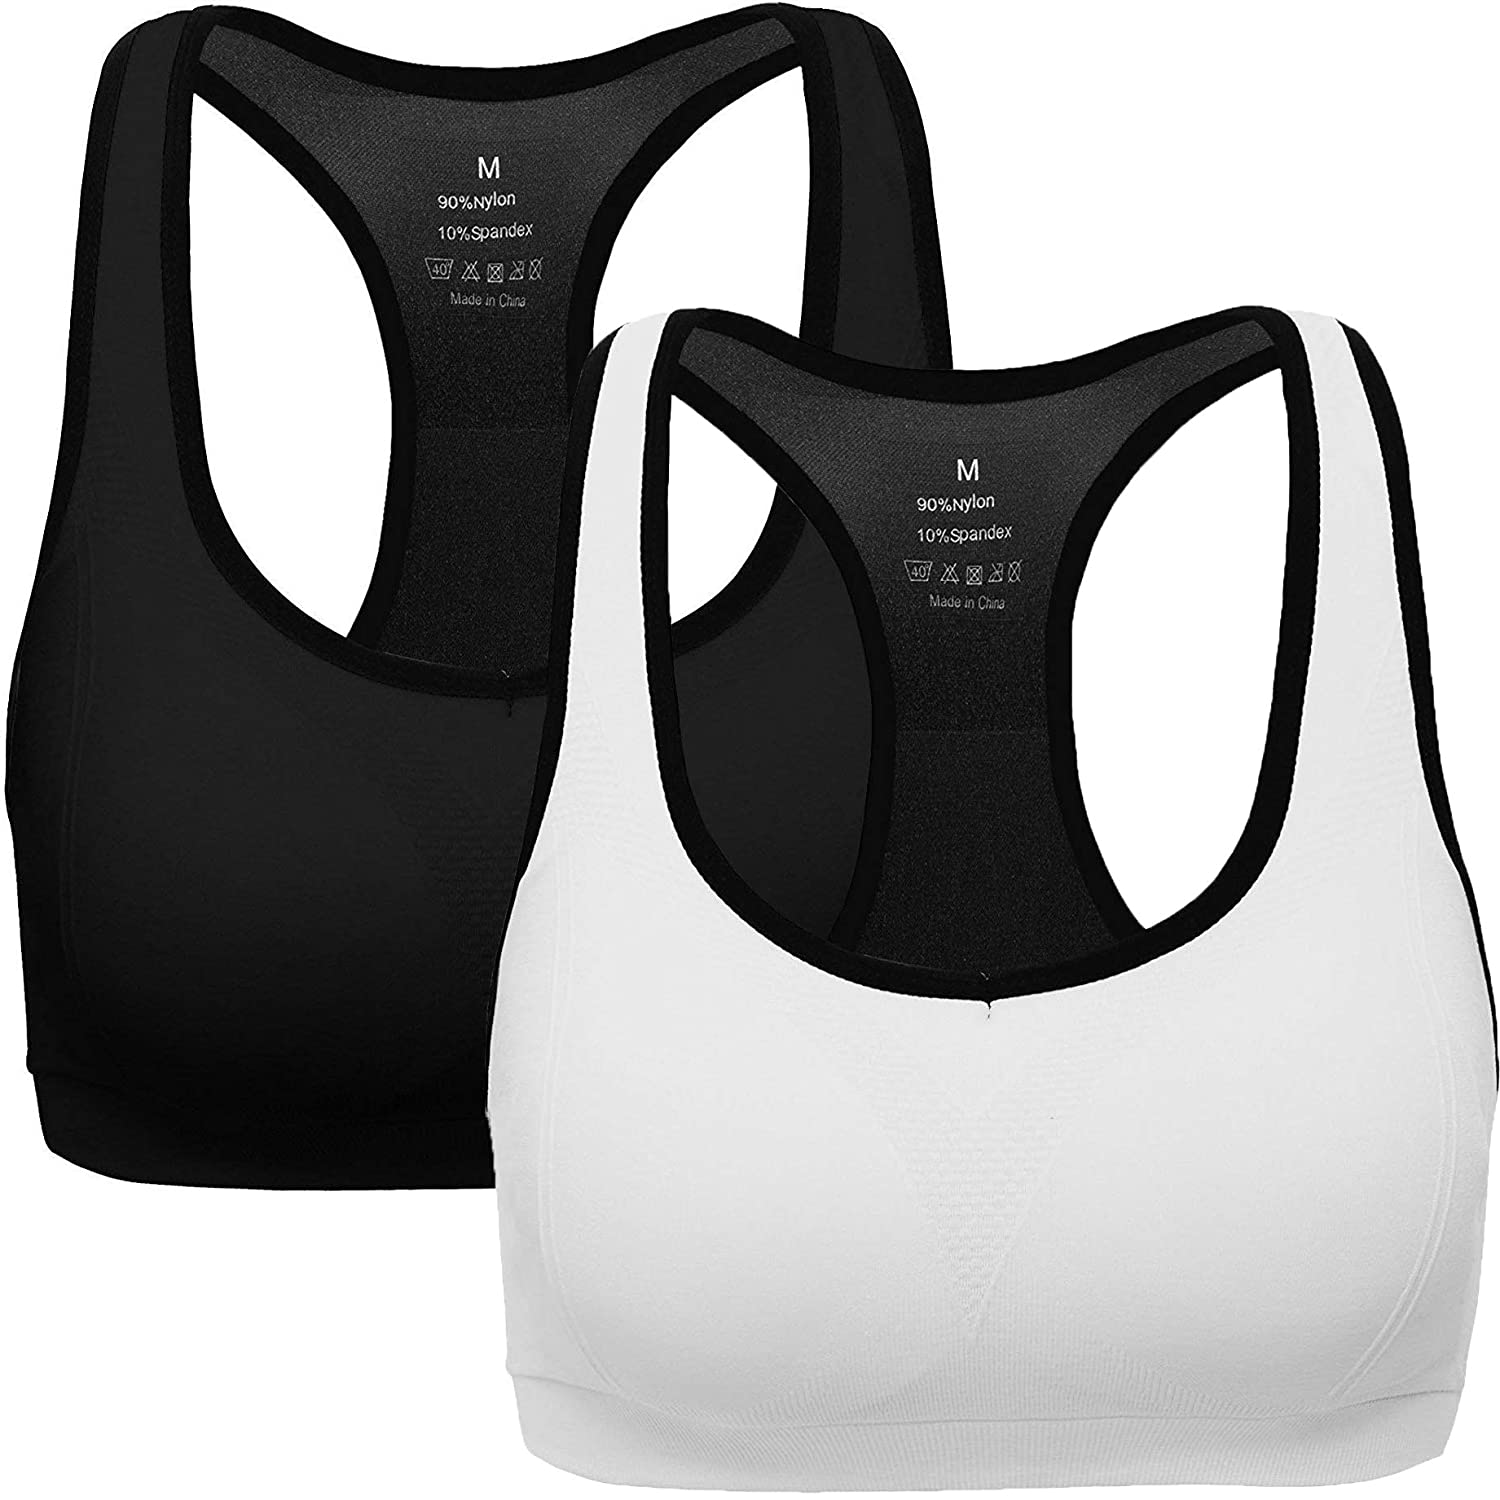 ANGOOL Women's Sports Bra Padded High Impact Racerback Comfy Yoga Workout Bra